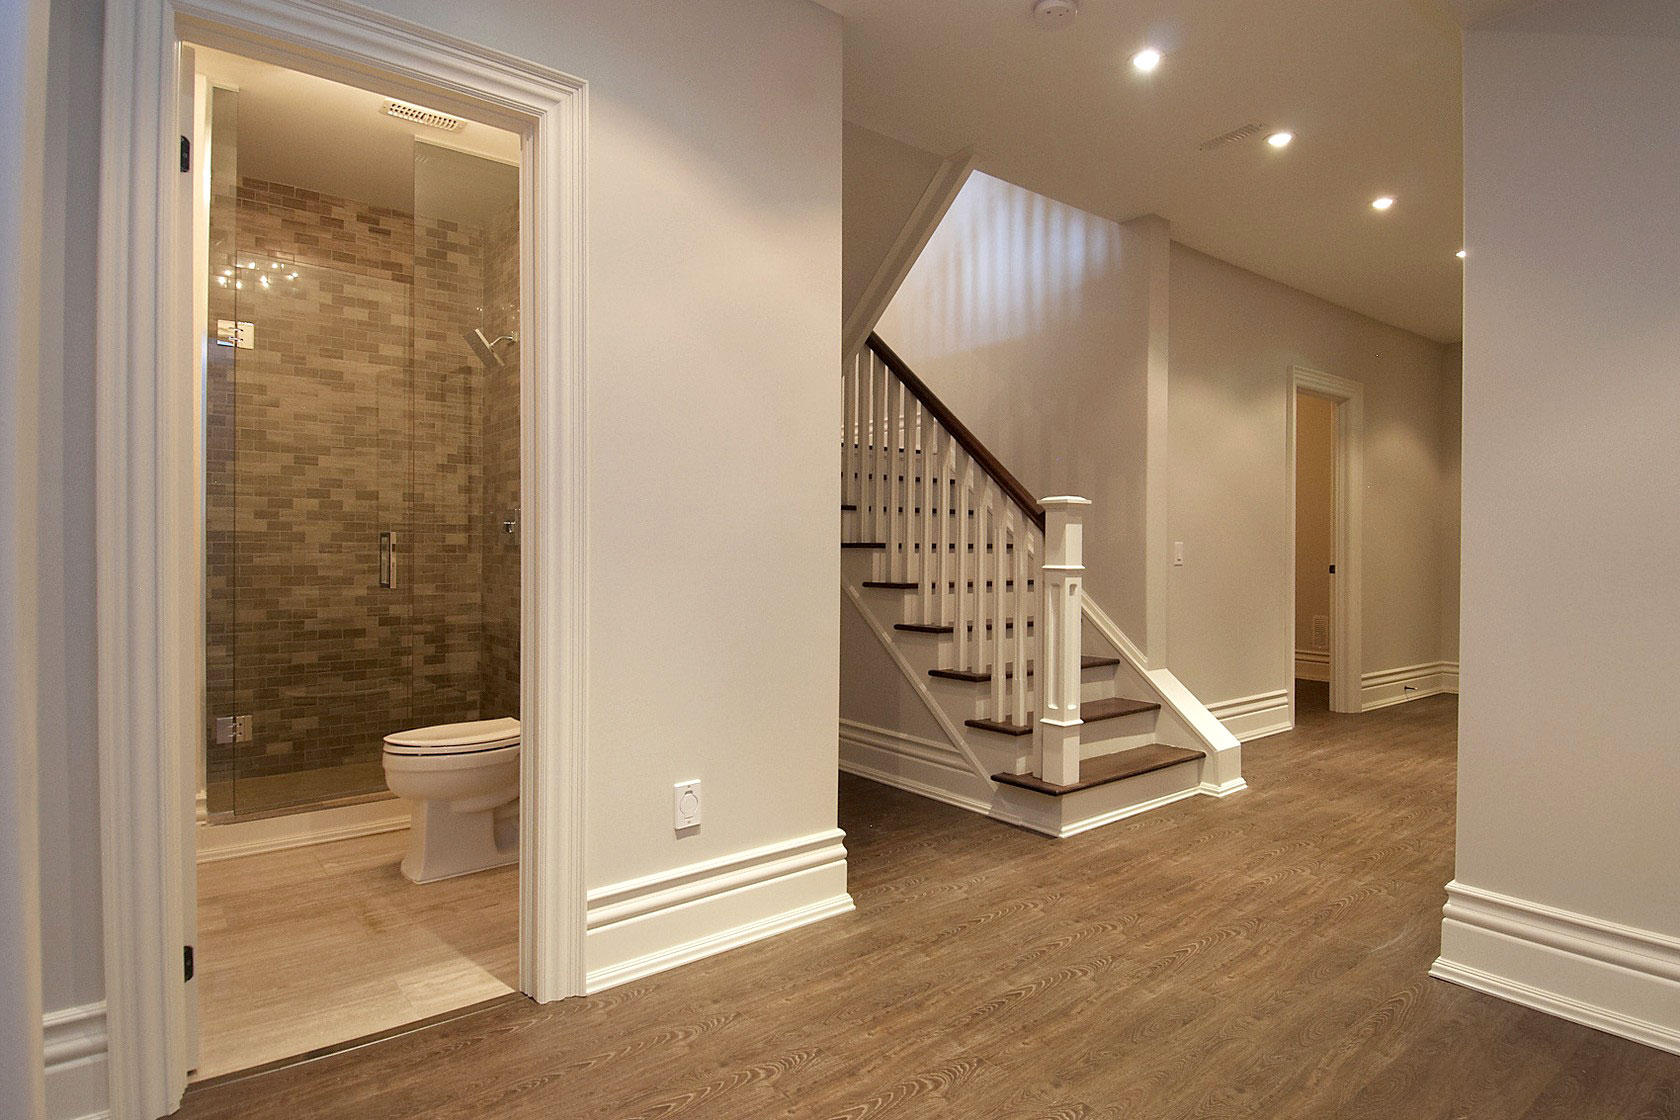 Basement Reno in Etobicoke